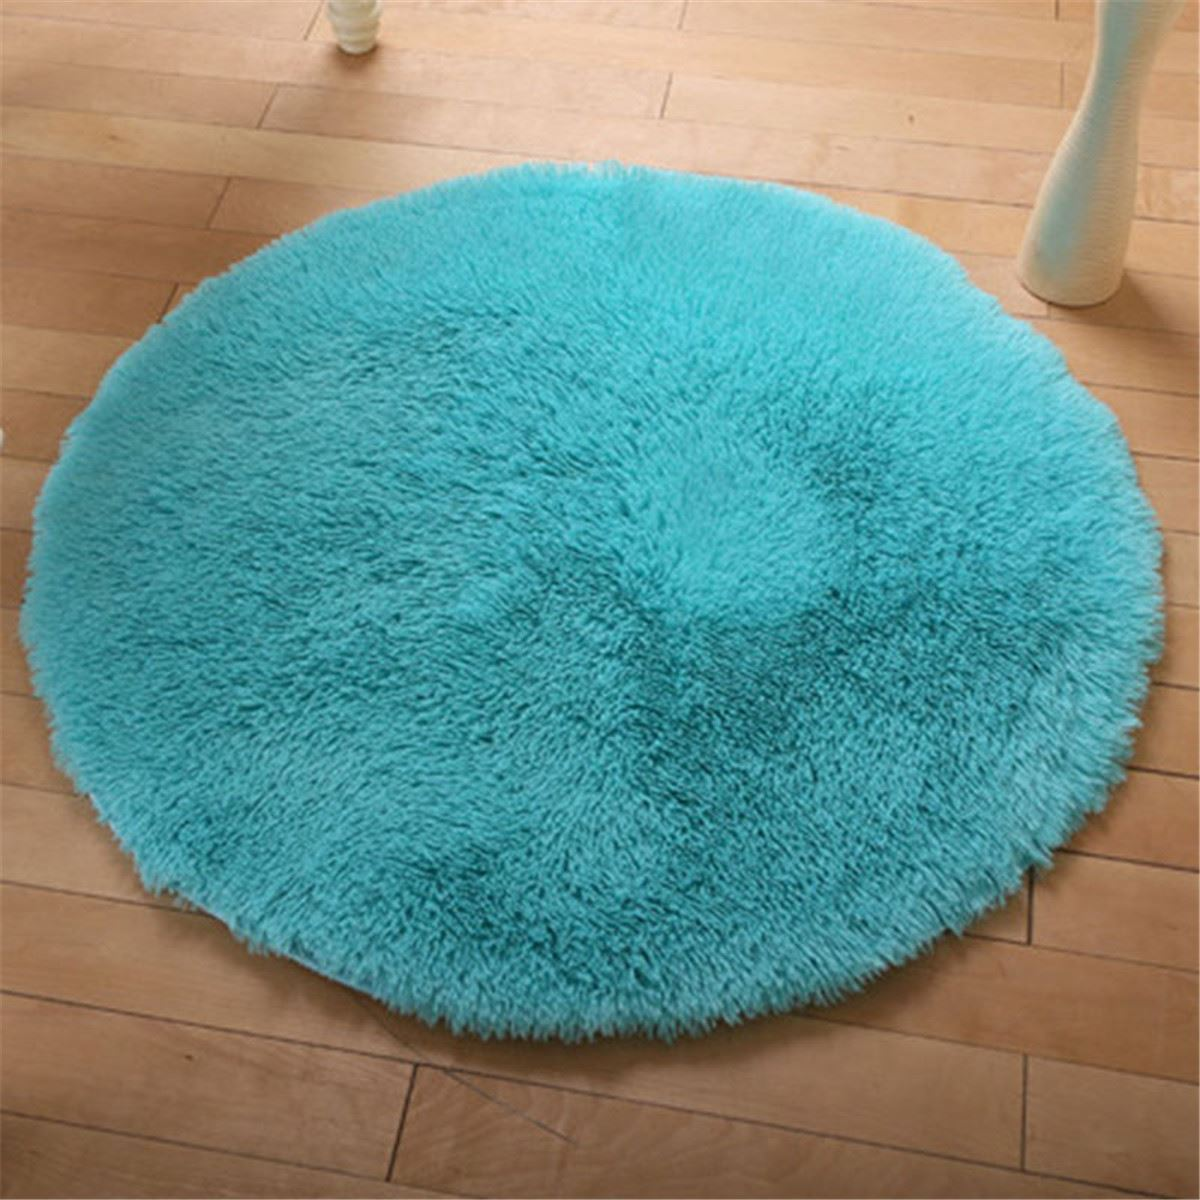 Fluffy Round Anti-Skid Floor Mats Carpet 40cm Shaggy Area Rug Door Floor Blanket Dining Room Bedroom Decoration Home Textiles(China)